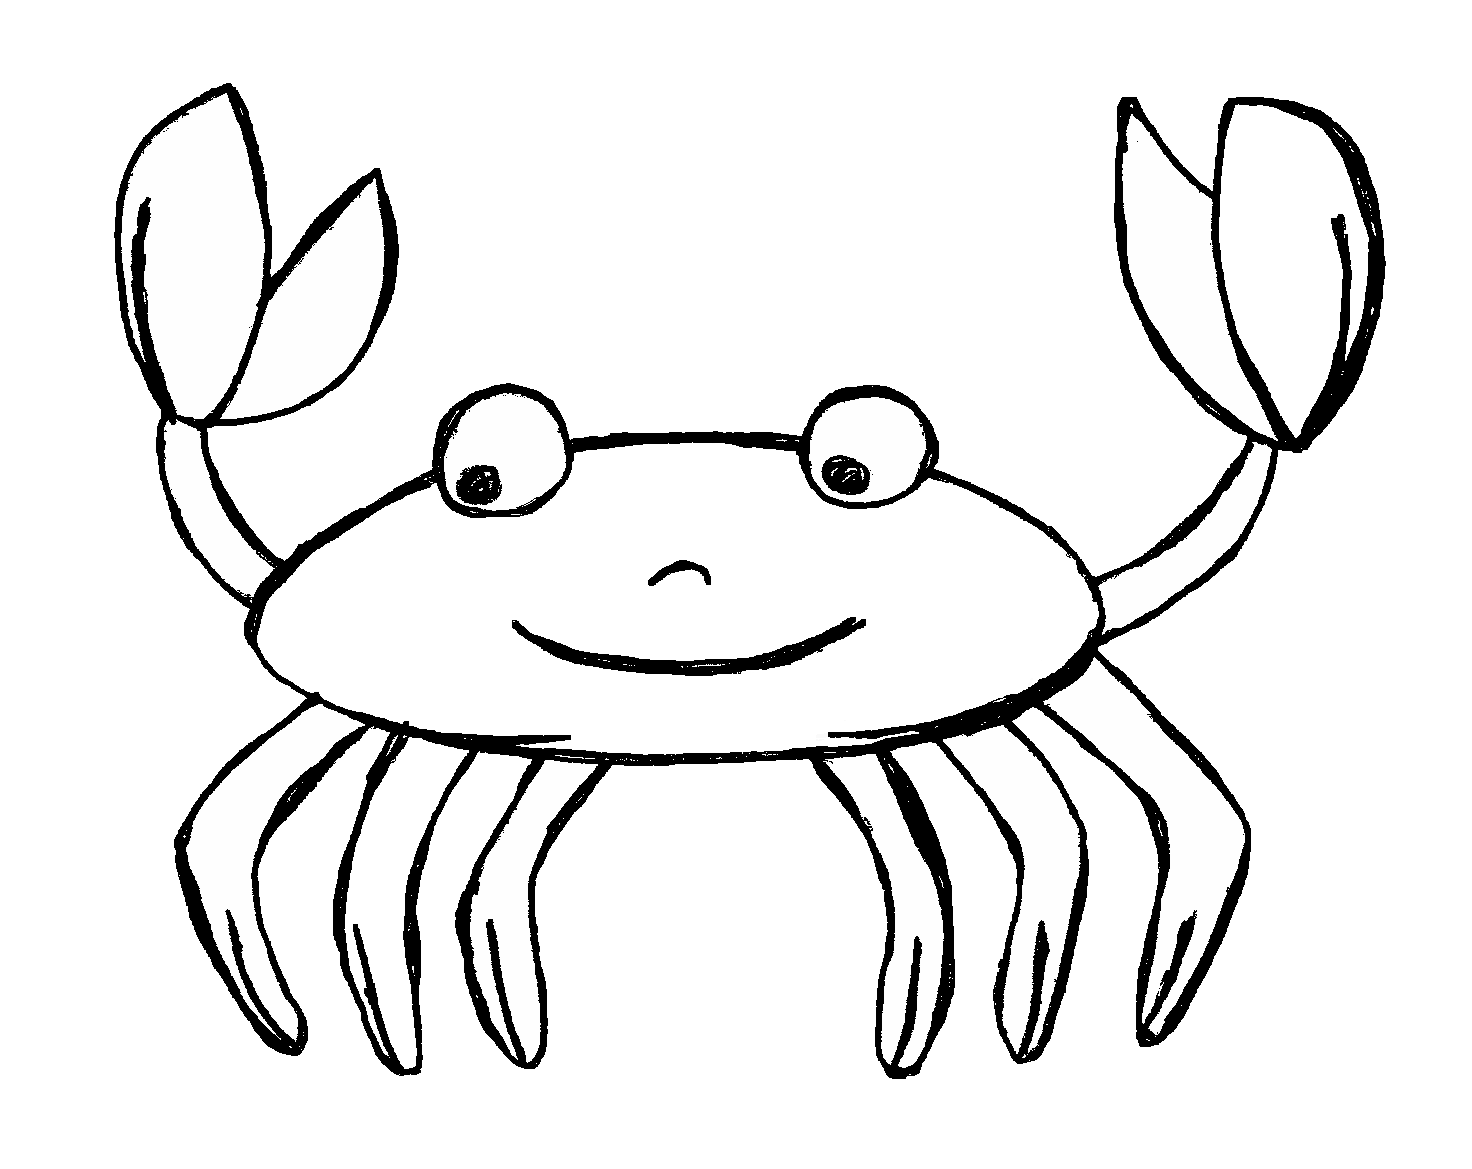 31+ Cute starfish clipart black and white ideas in 2021